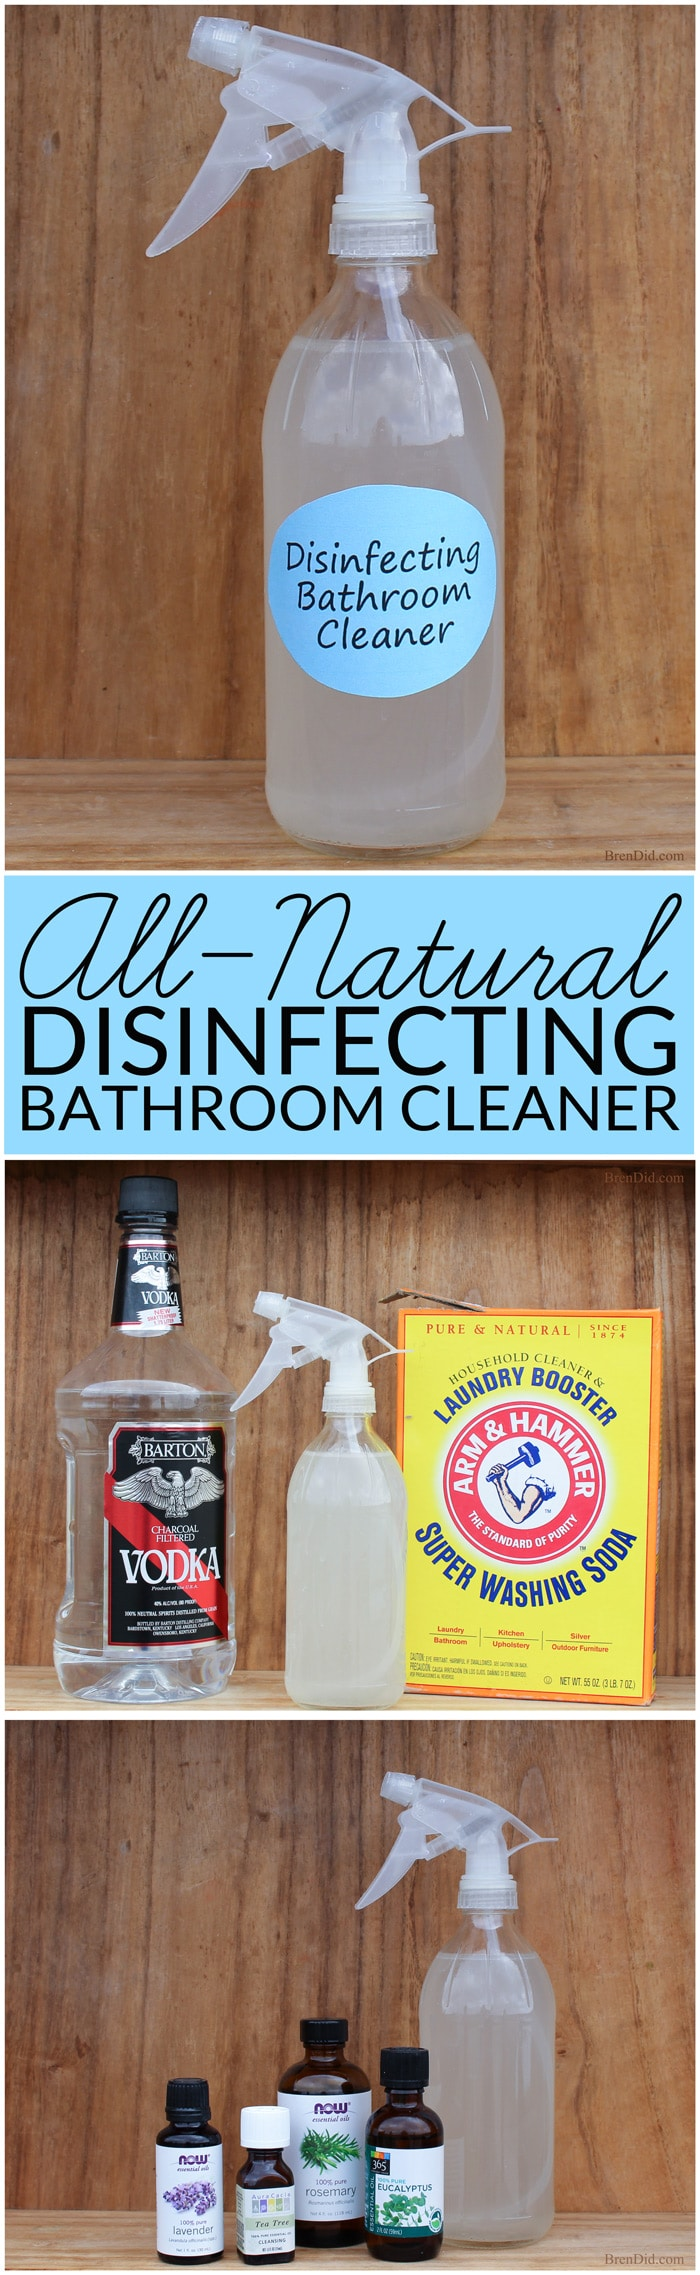 Make bathroom cleaner - Diy Cleaning Products Are Safe Effective And Frugal Learn How To Make All